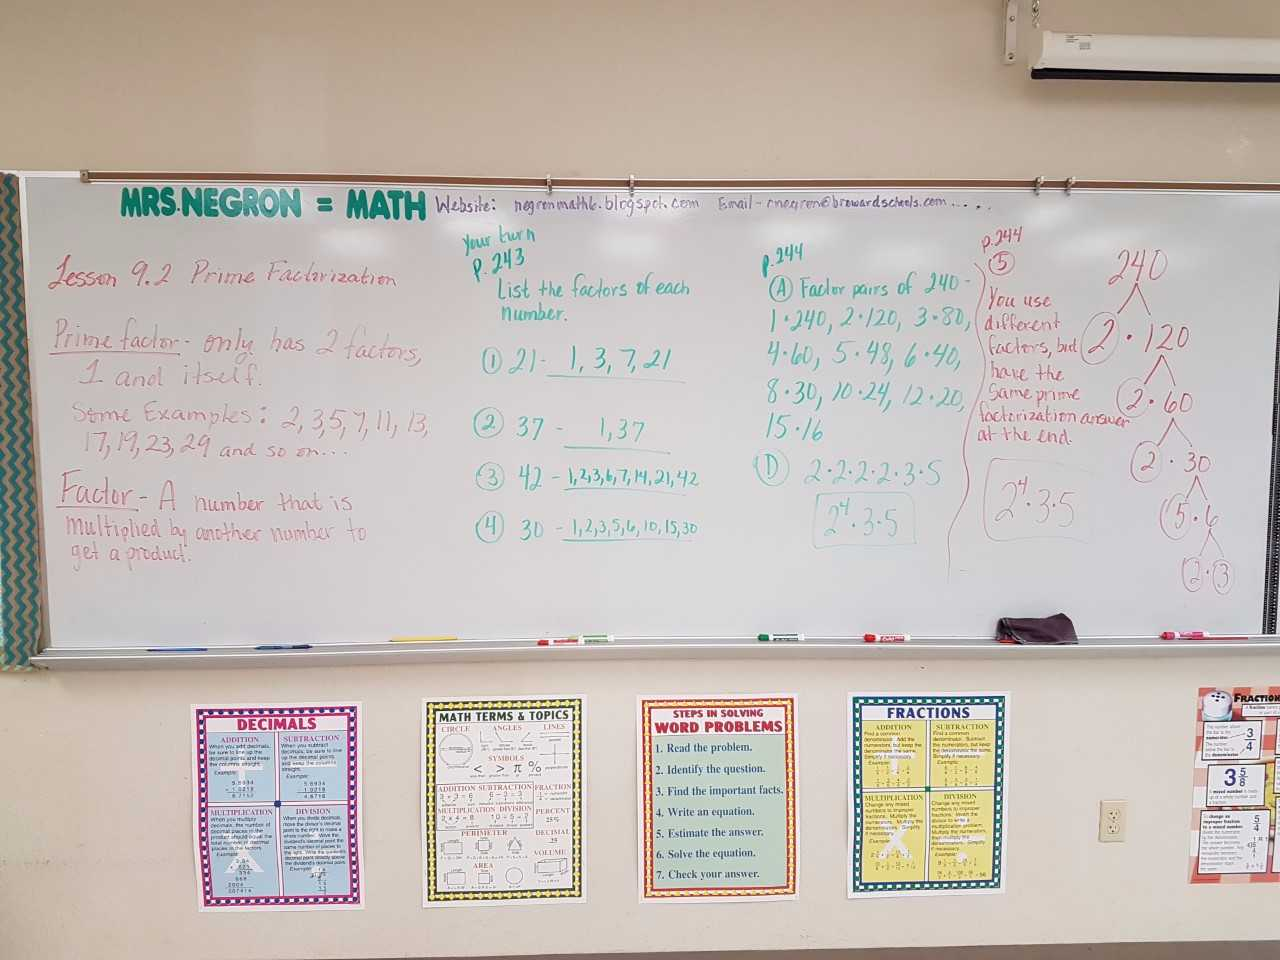 Mrs Negron 6th Grade Math Class Lesson 9 2 Prime